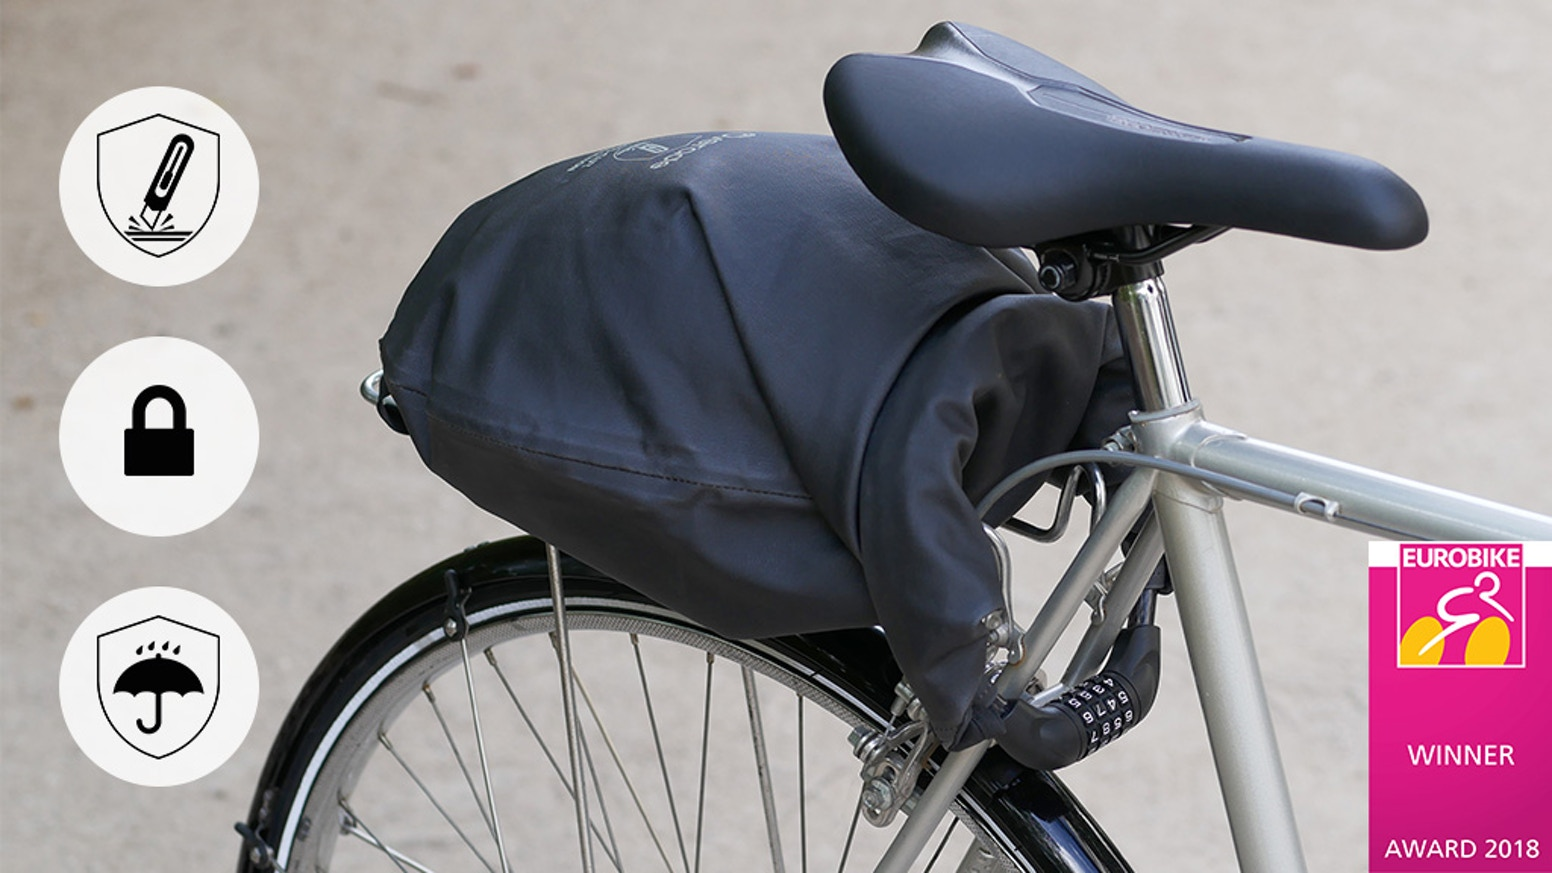 LOXI: The 1st Anti-theft & Waterproof Bag for your Bike by